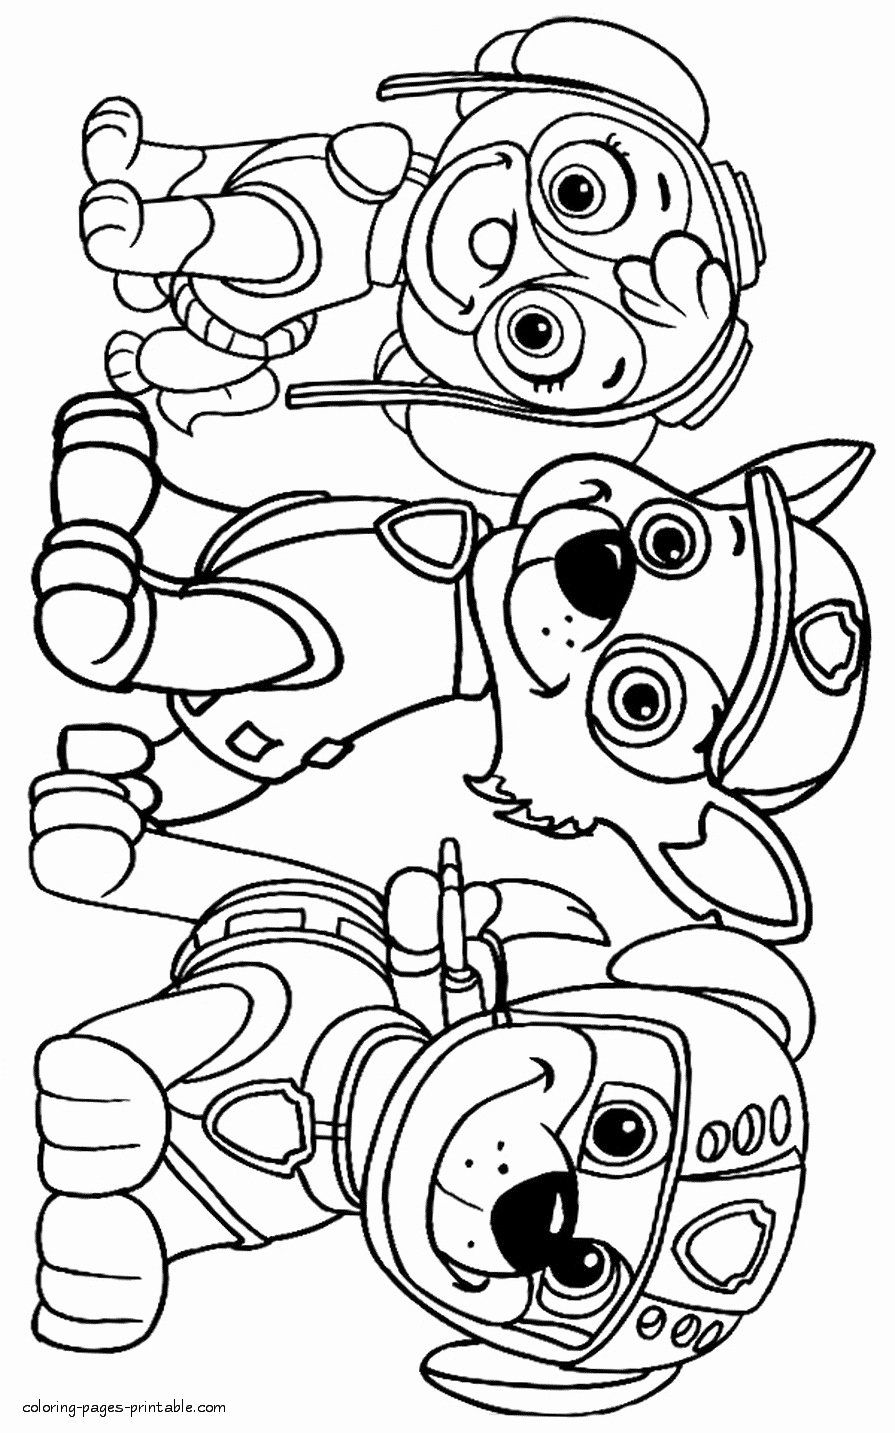 Printable Dog Coloring Sheets In 2020 Paw Patrol Coloring Pages